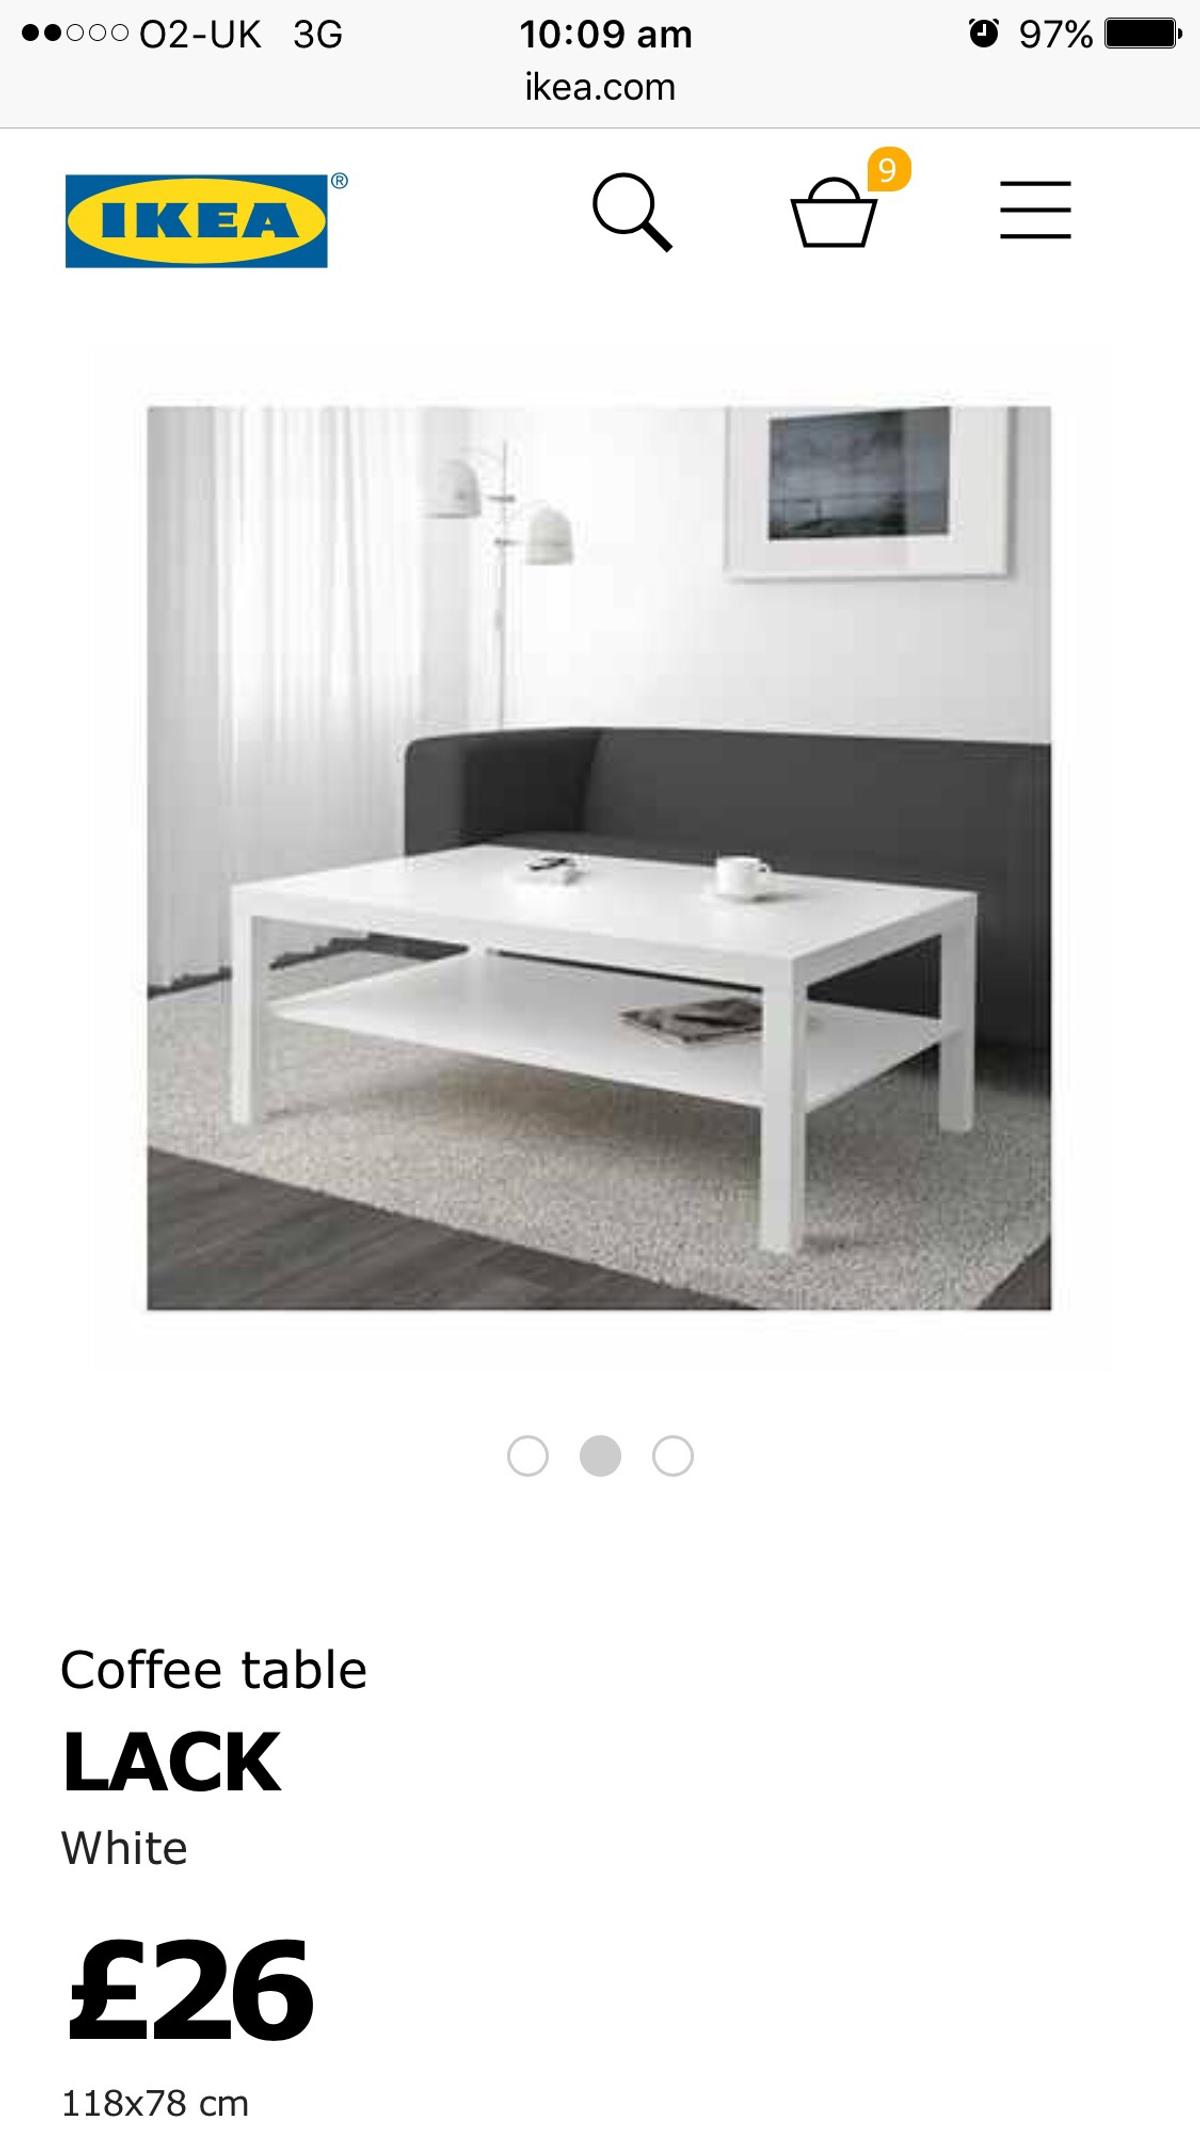 Ikea White Coffee Table 18